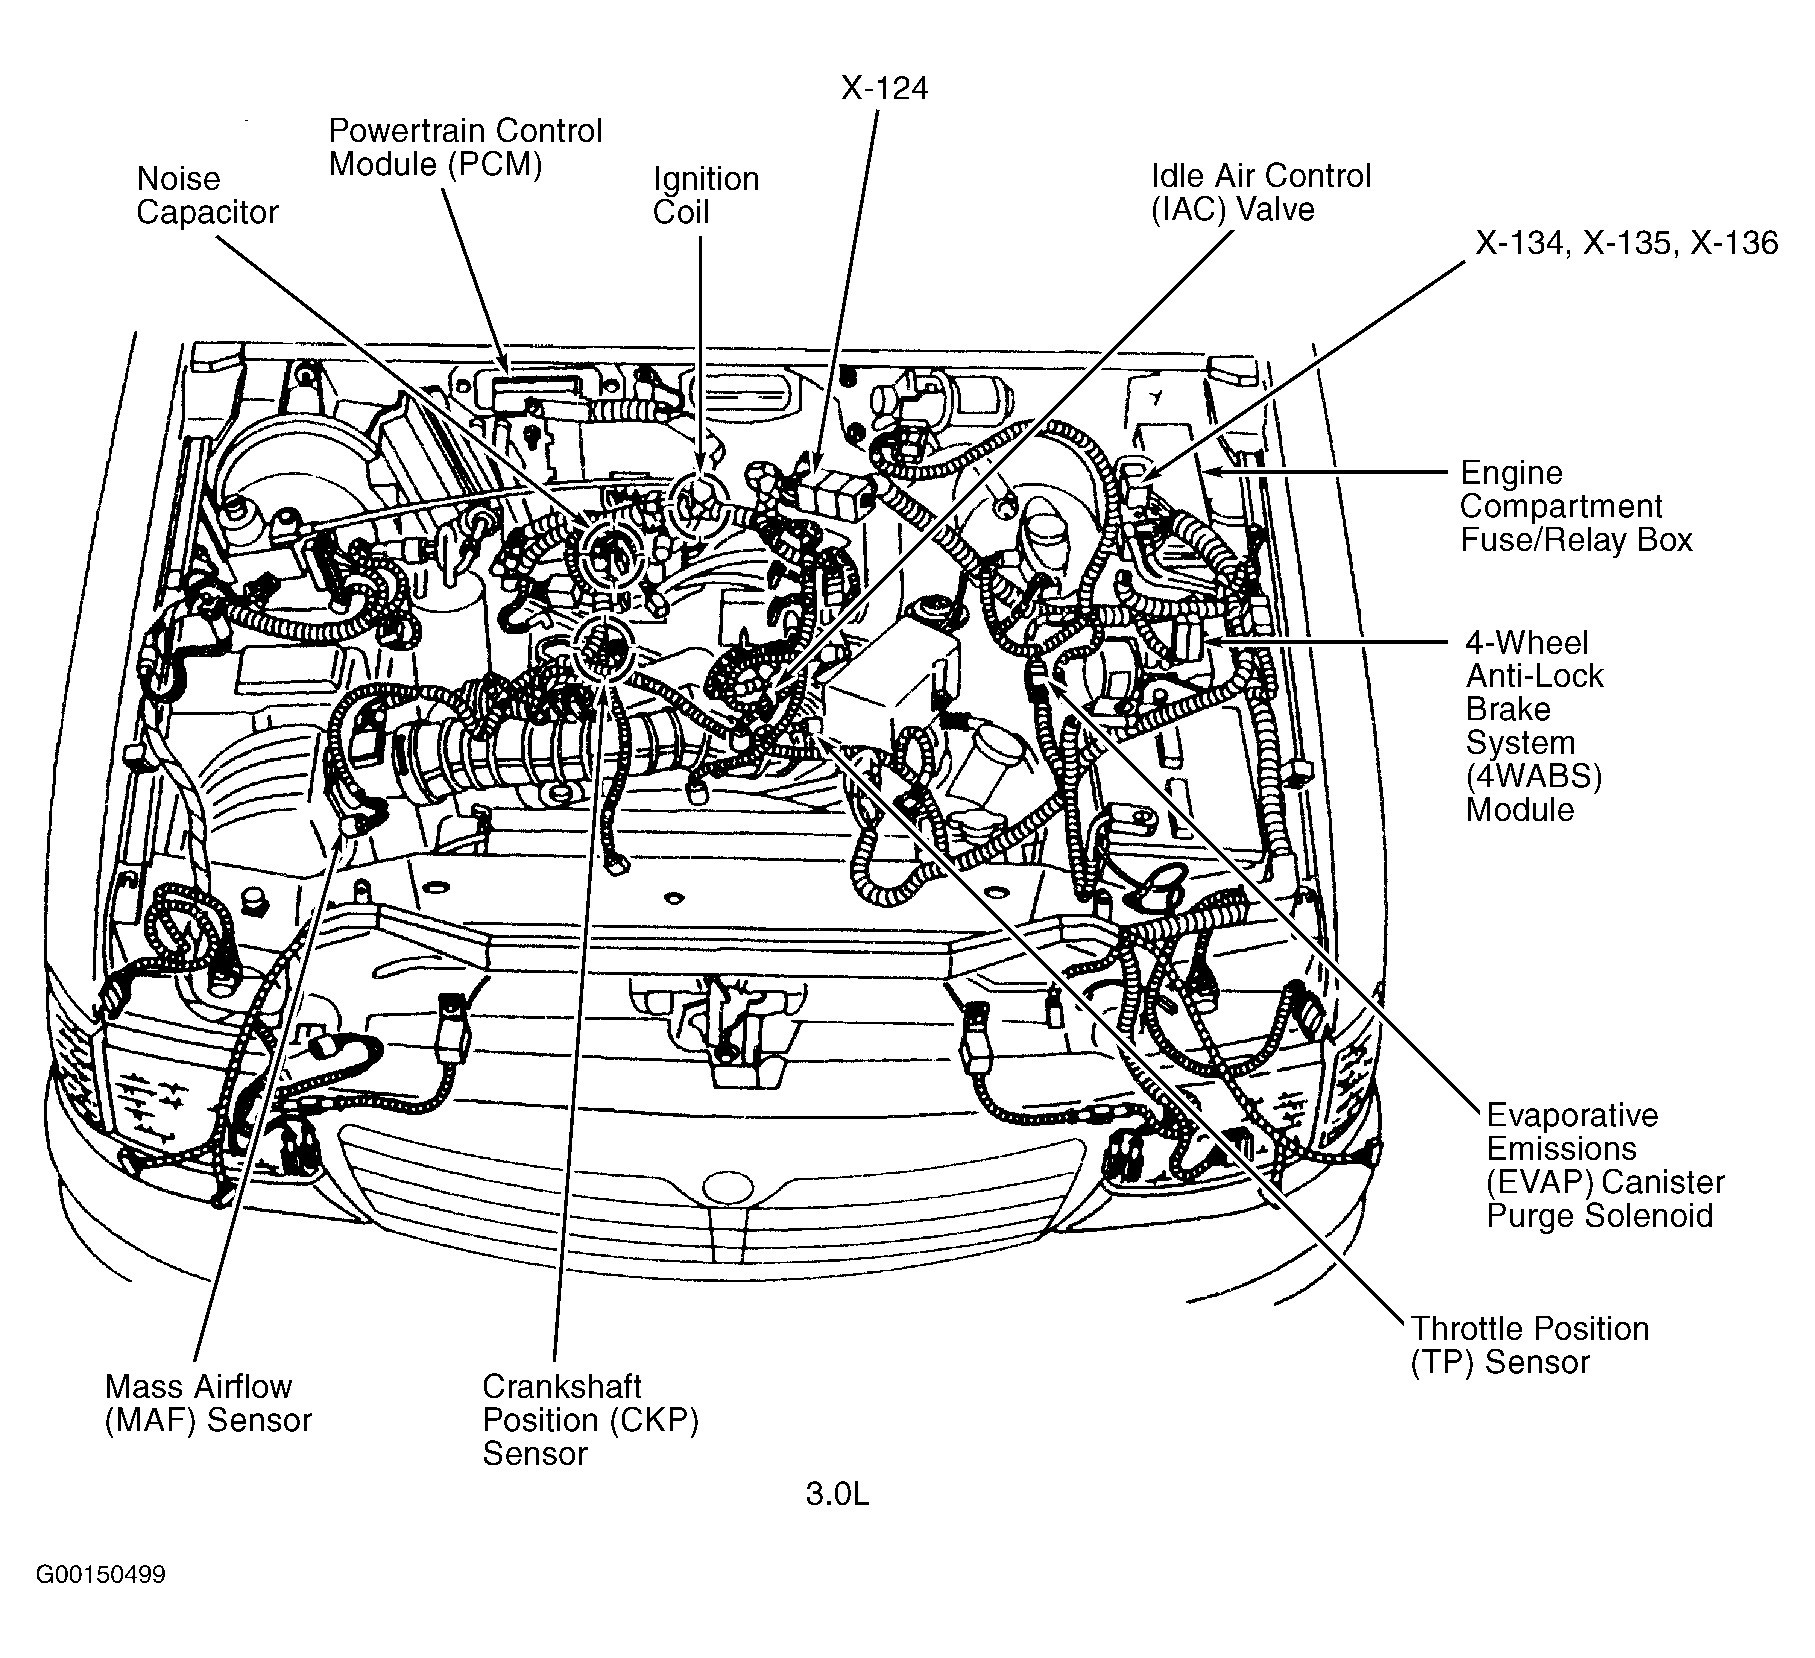 Jeep Yj 6 Cyl Engine Diagram Wiring Fuse Box 1993 Wrangler Cylinder U2022 Rh Kreasoft Co 1995 Parts